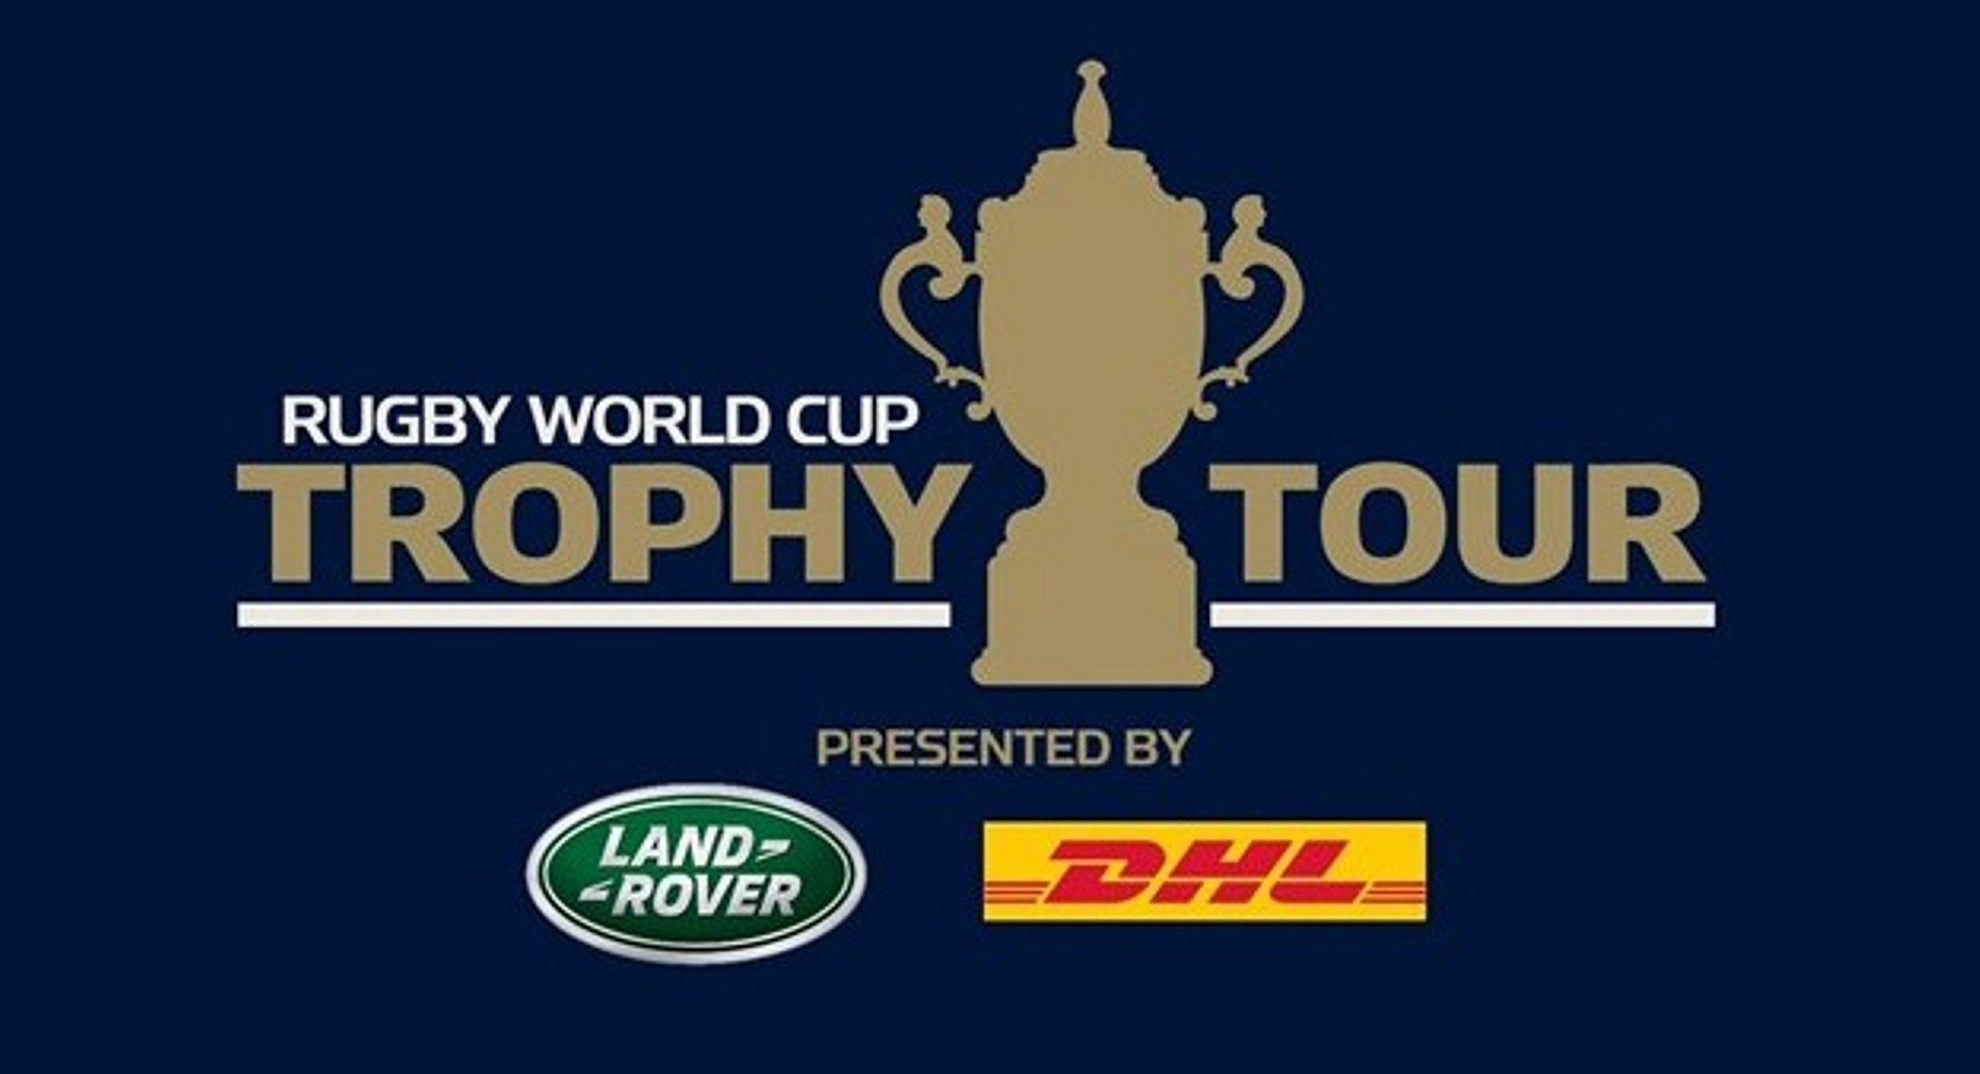 Rugby_World_Cup_Trophy_Tour